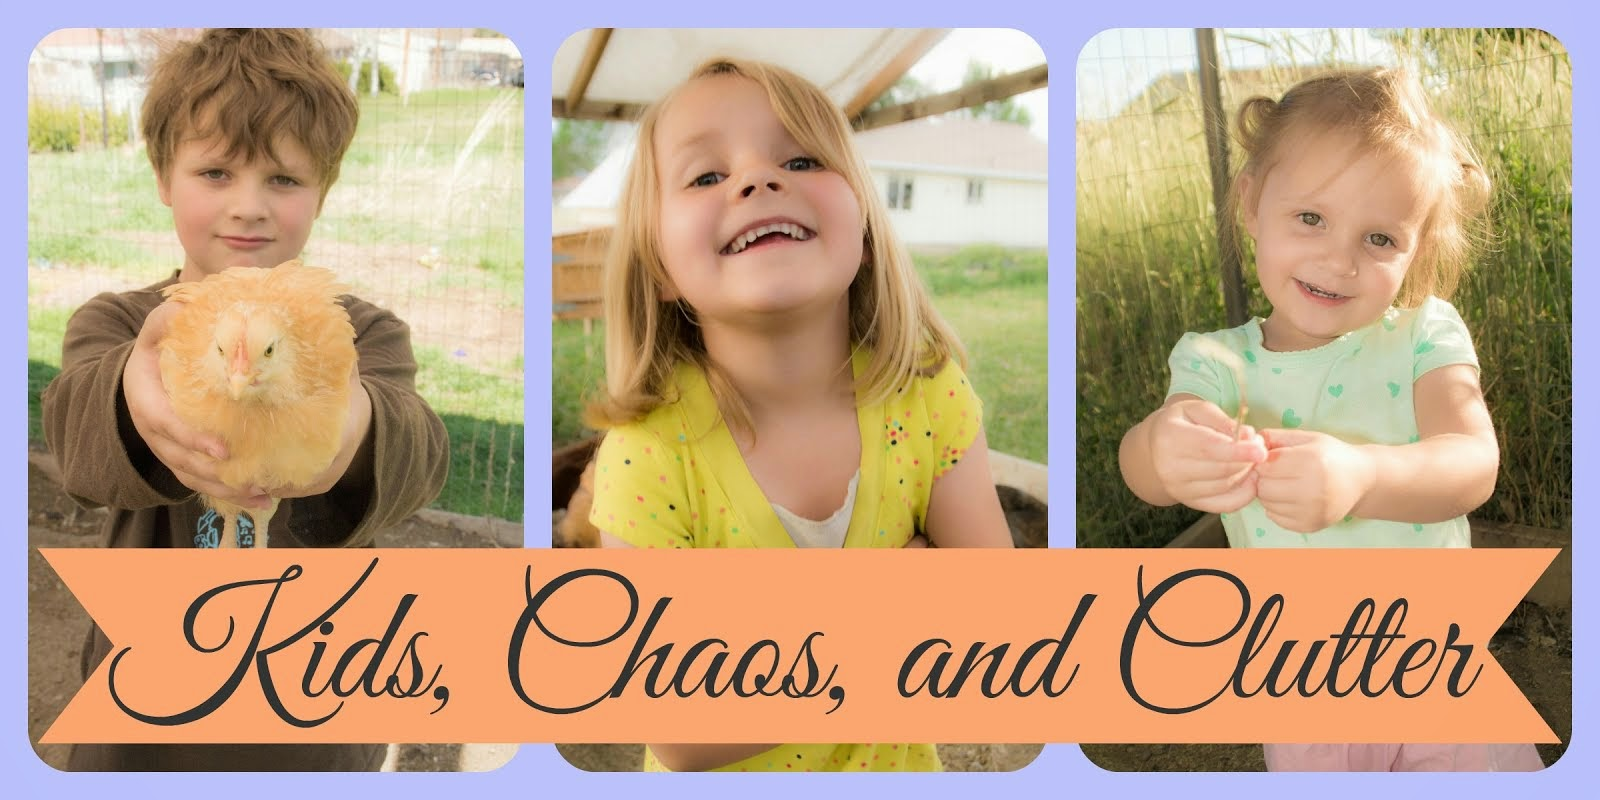 Kids, Chaos, and Clutter